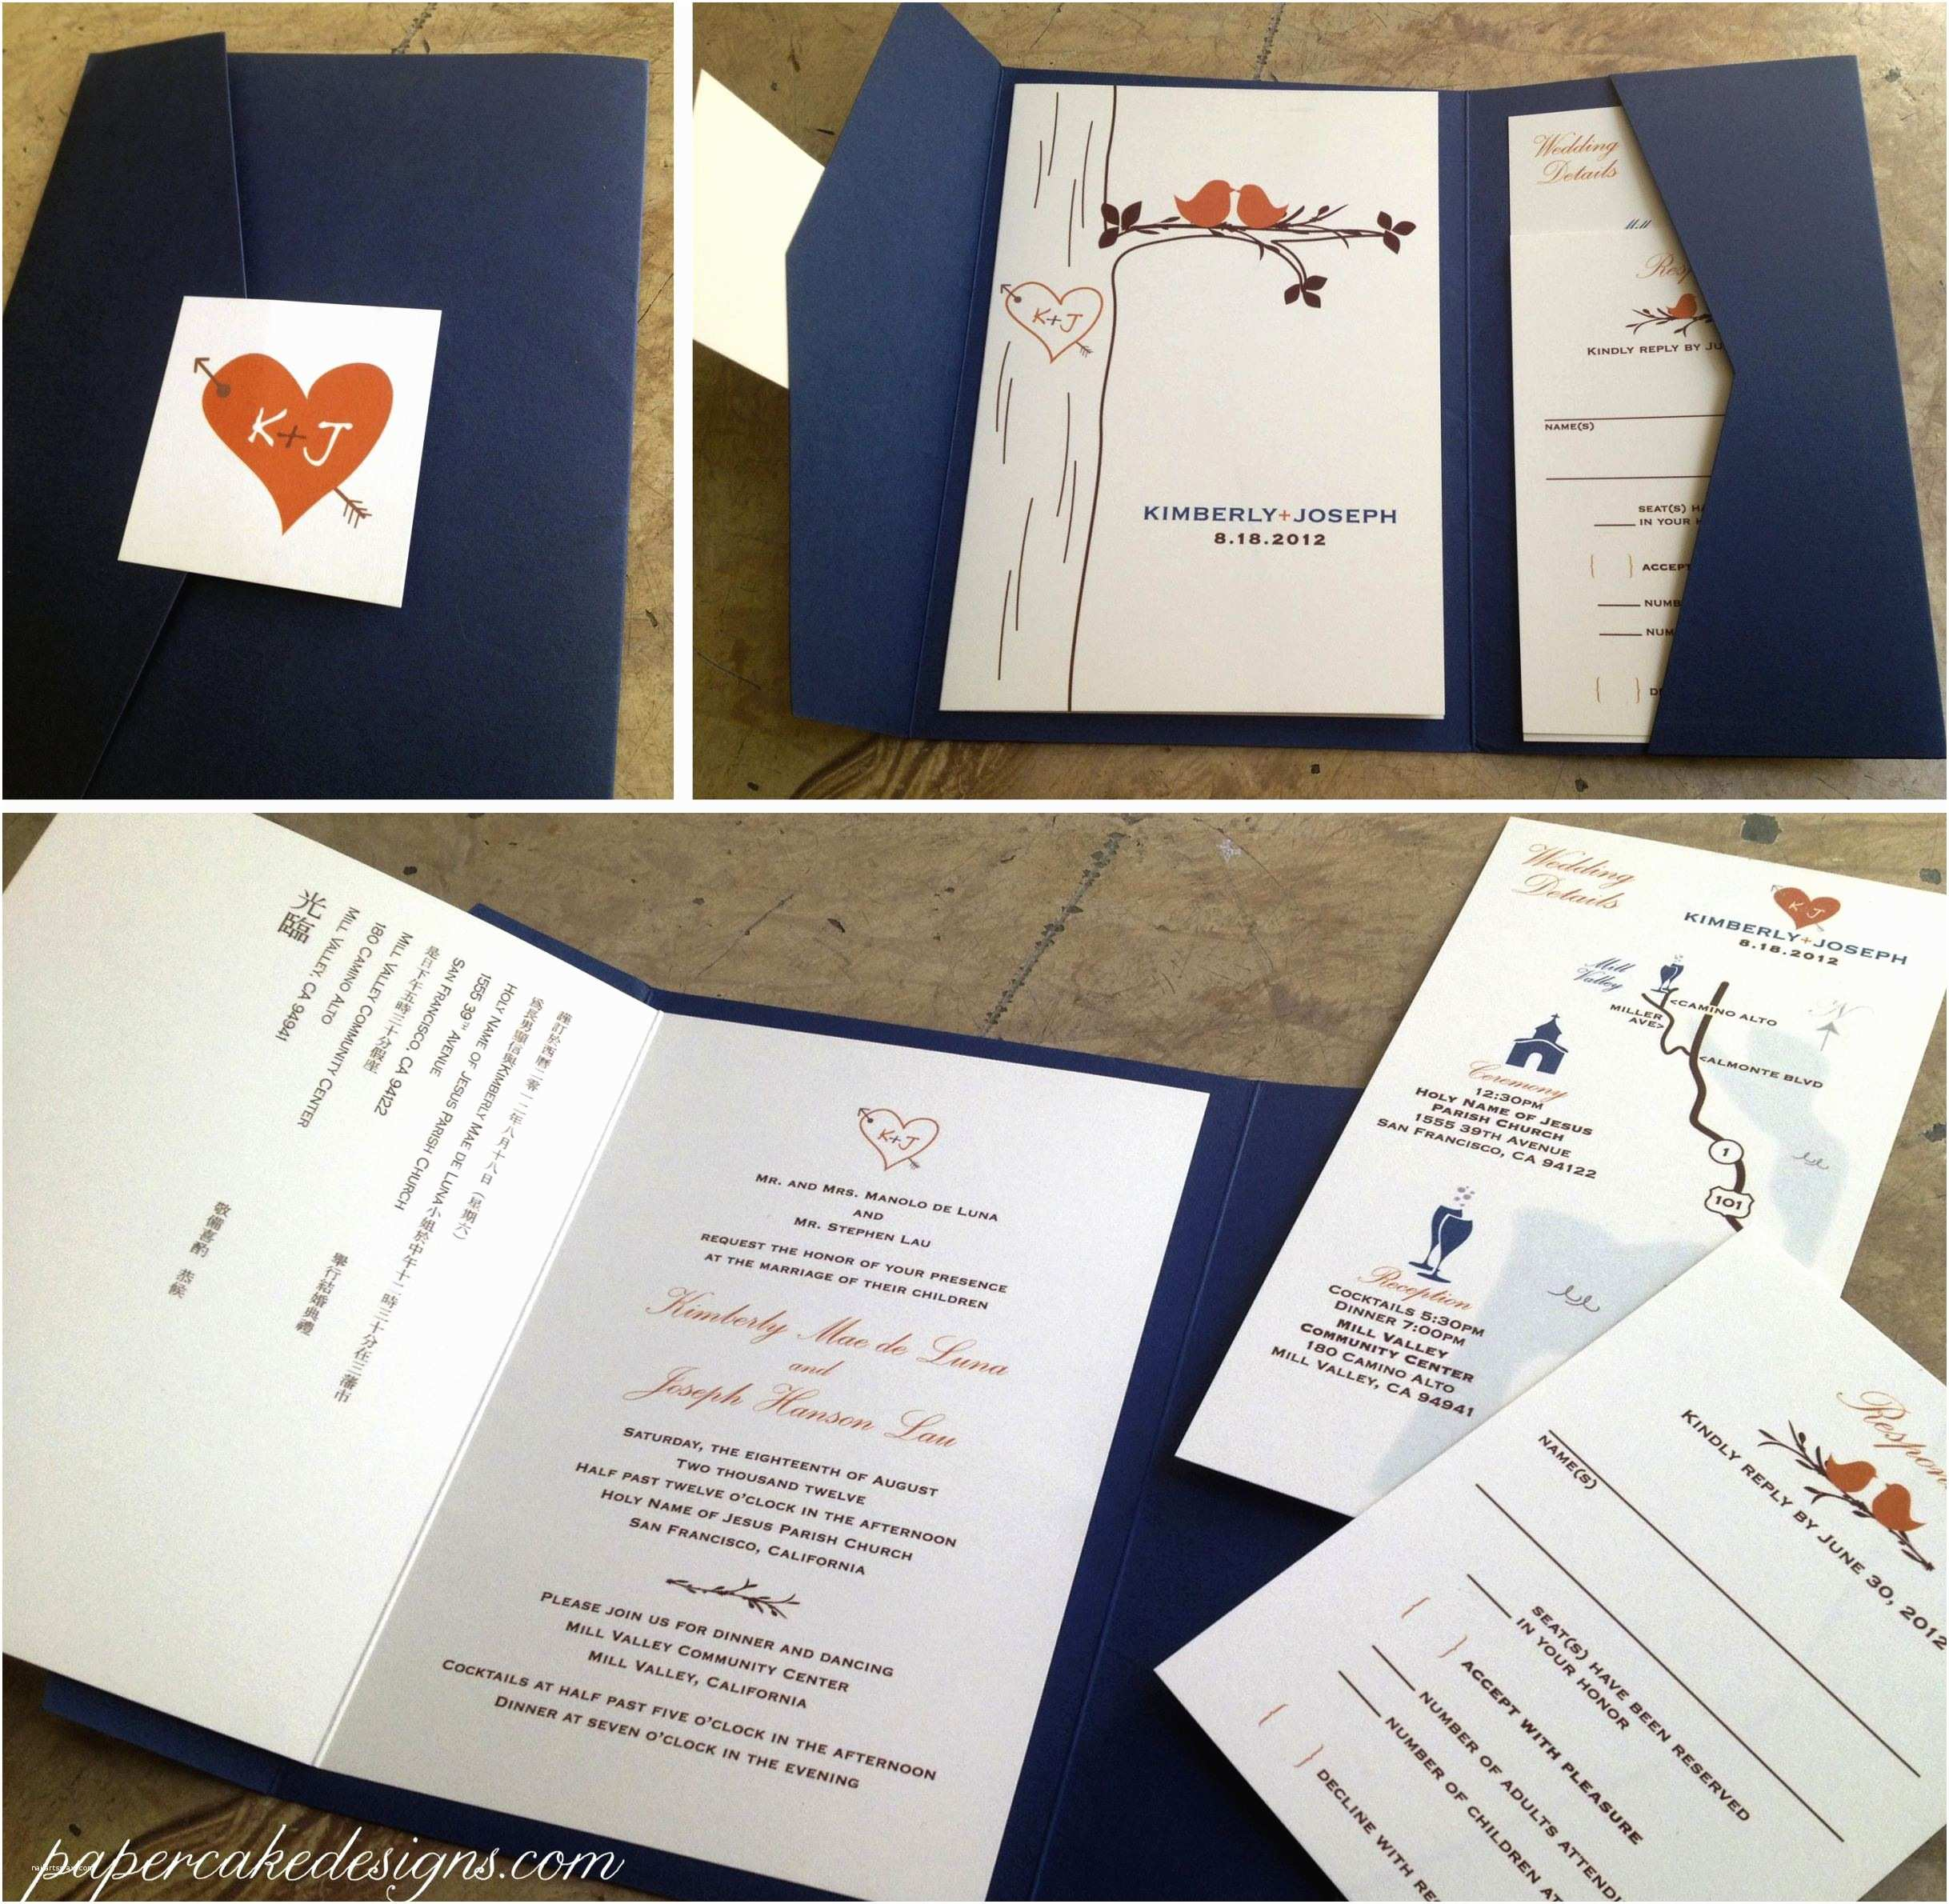 Wedding Invitations Design Your Own Online Design Your Own Wedding Invitations Line and the